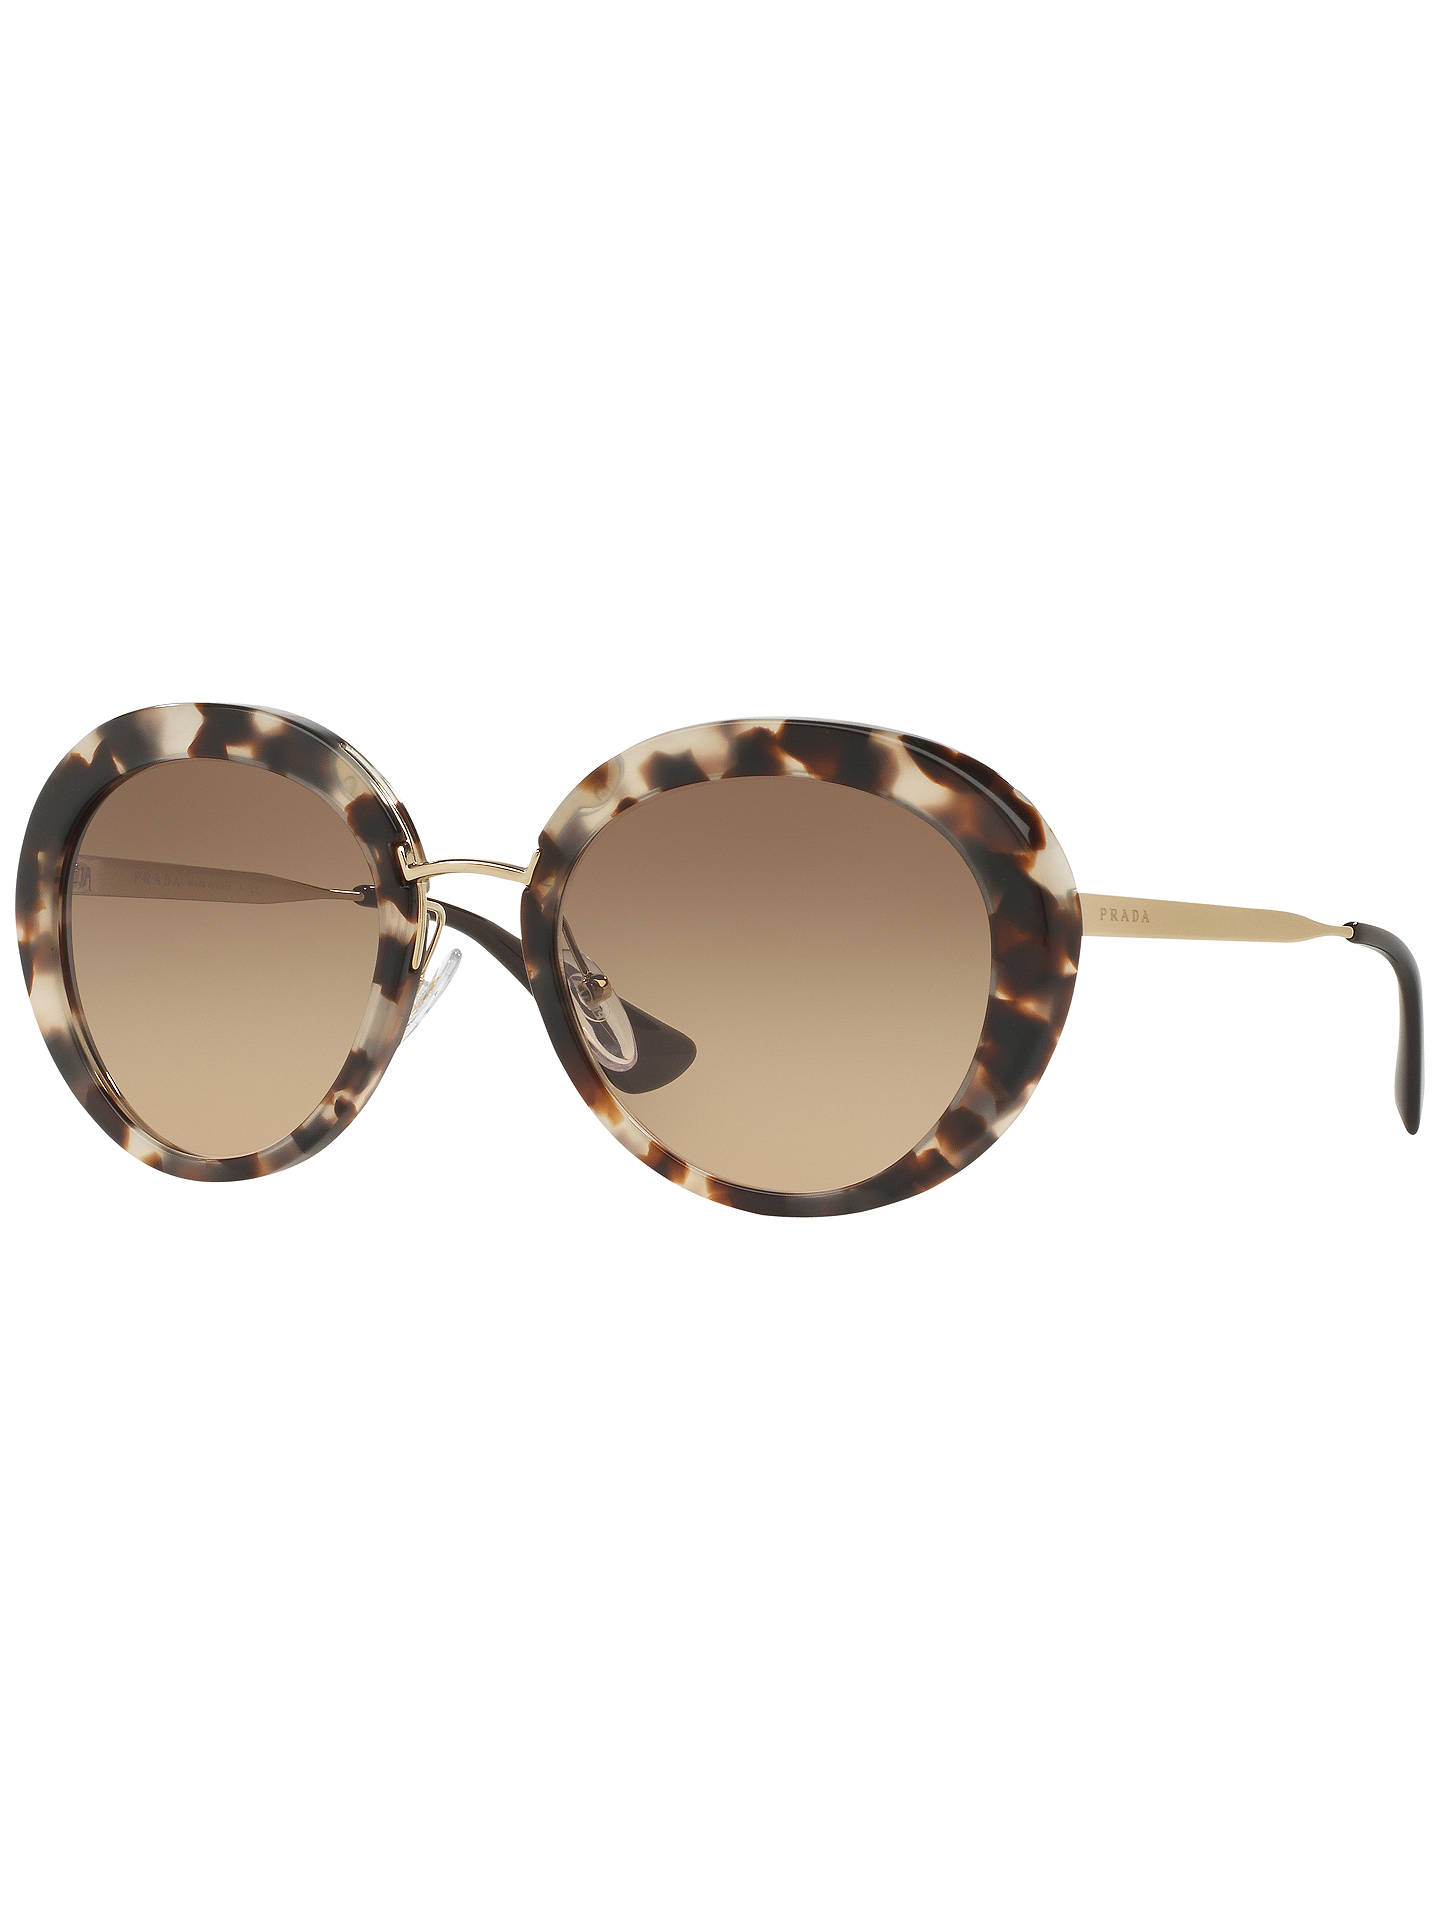 0ffa39378edb Buy Prada PR16QS Cinema Oval Sunglasses, Havana Online at johnlewis.com ...